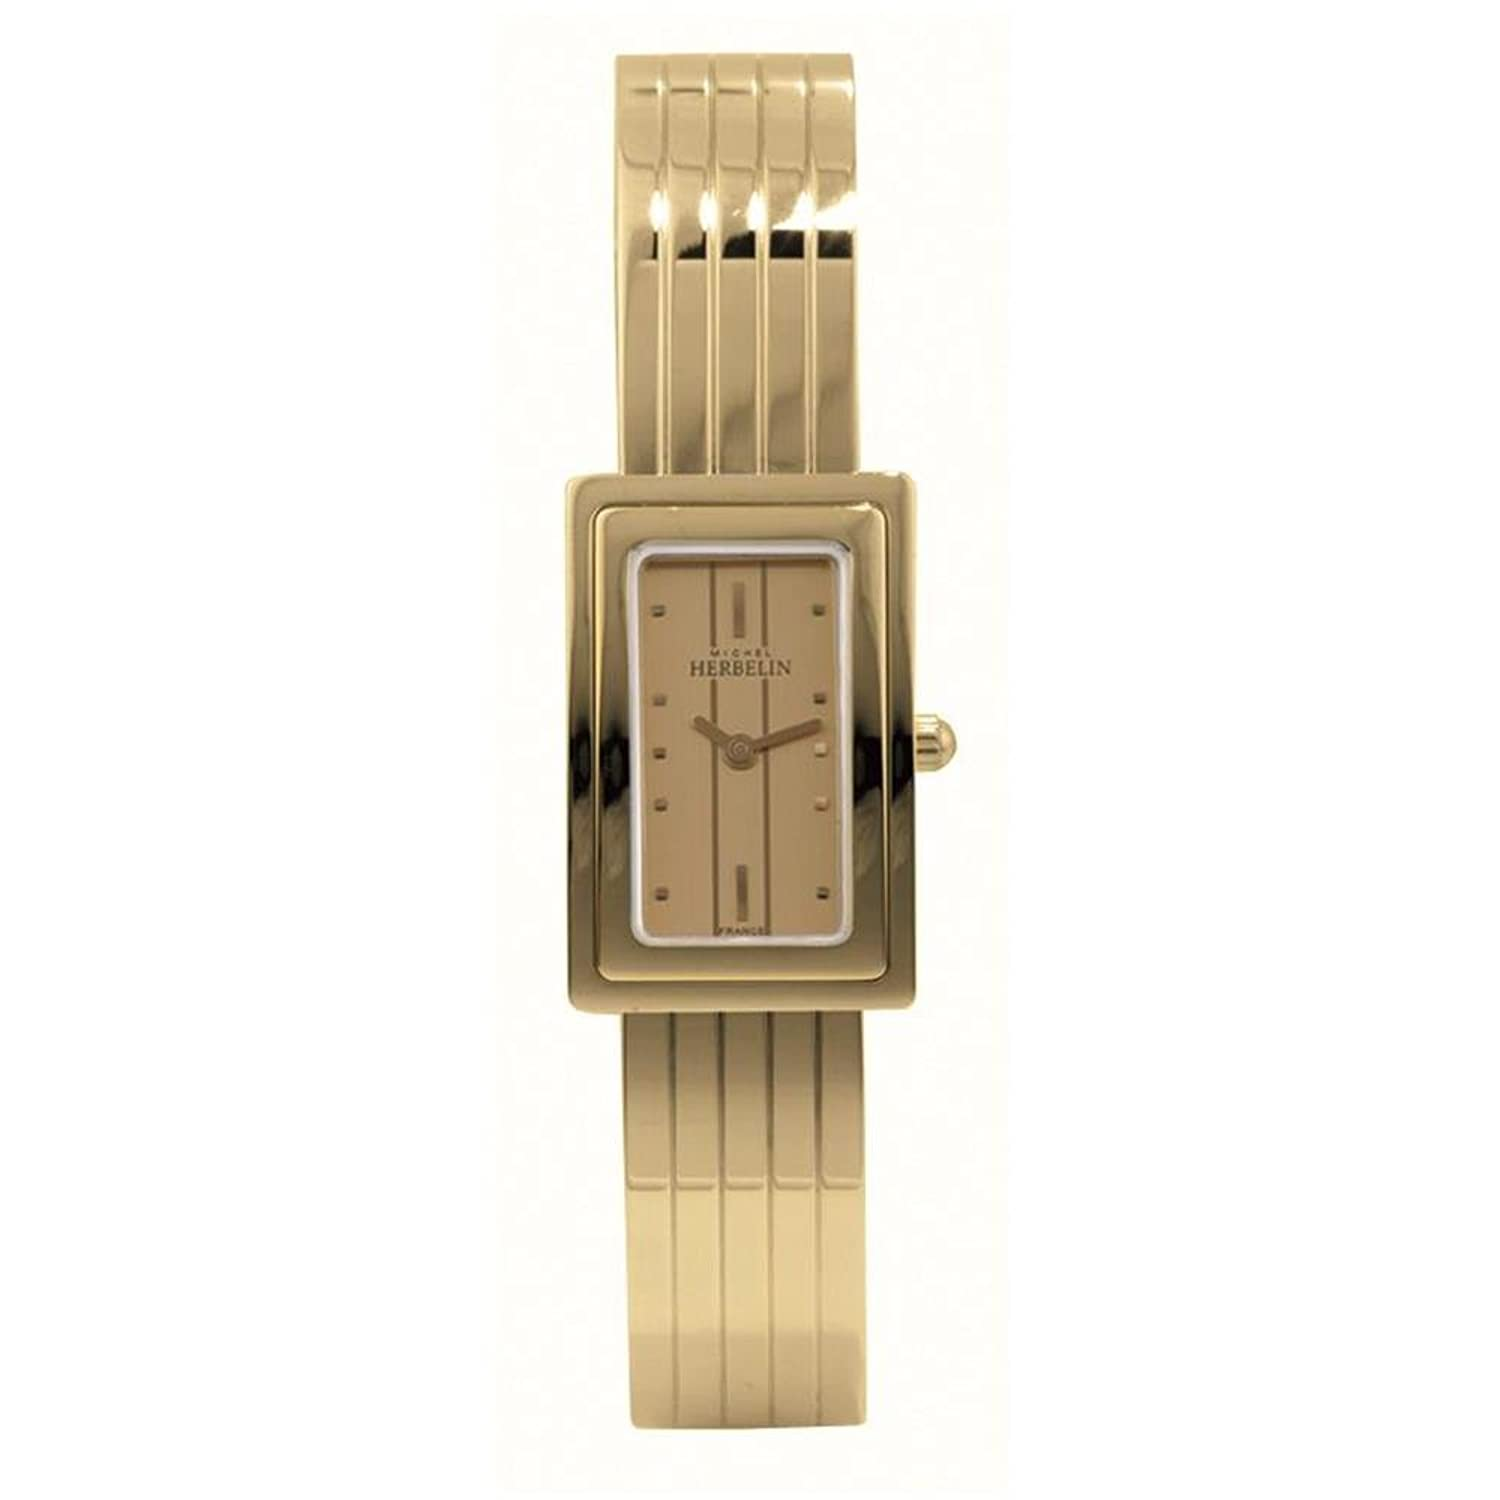 MICHEL HERBELIN DAMEN-ARMBANDUHR BATTERIE ZIFFERBLATT GOLD ANALOG 17092-BP13